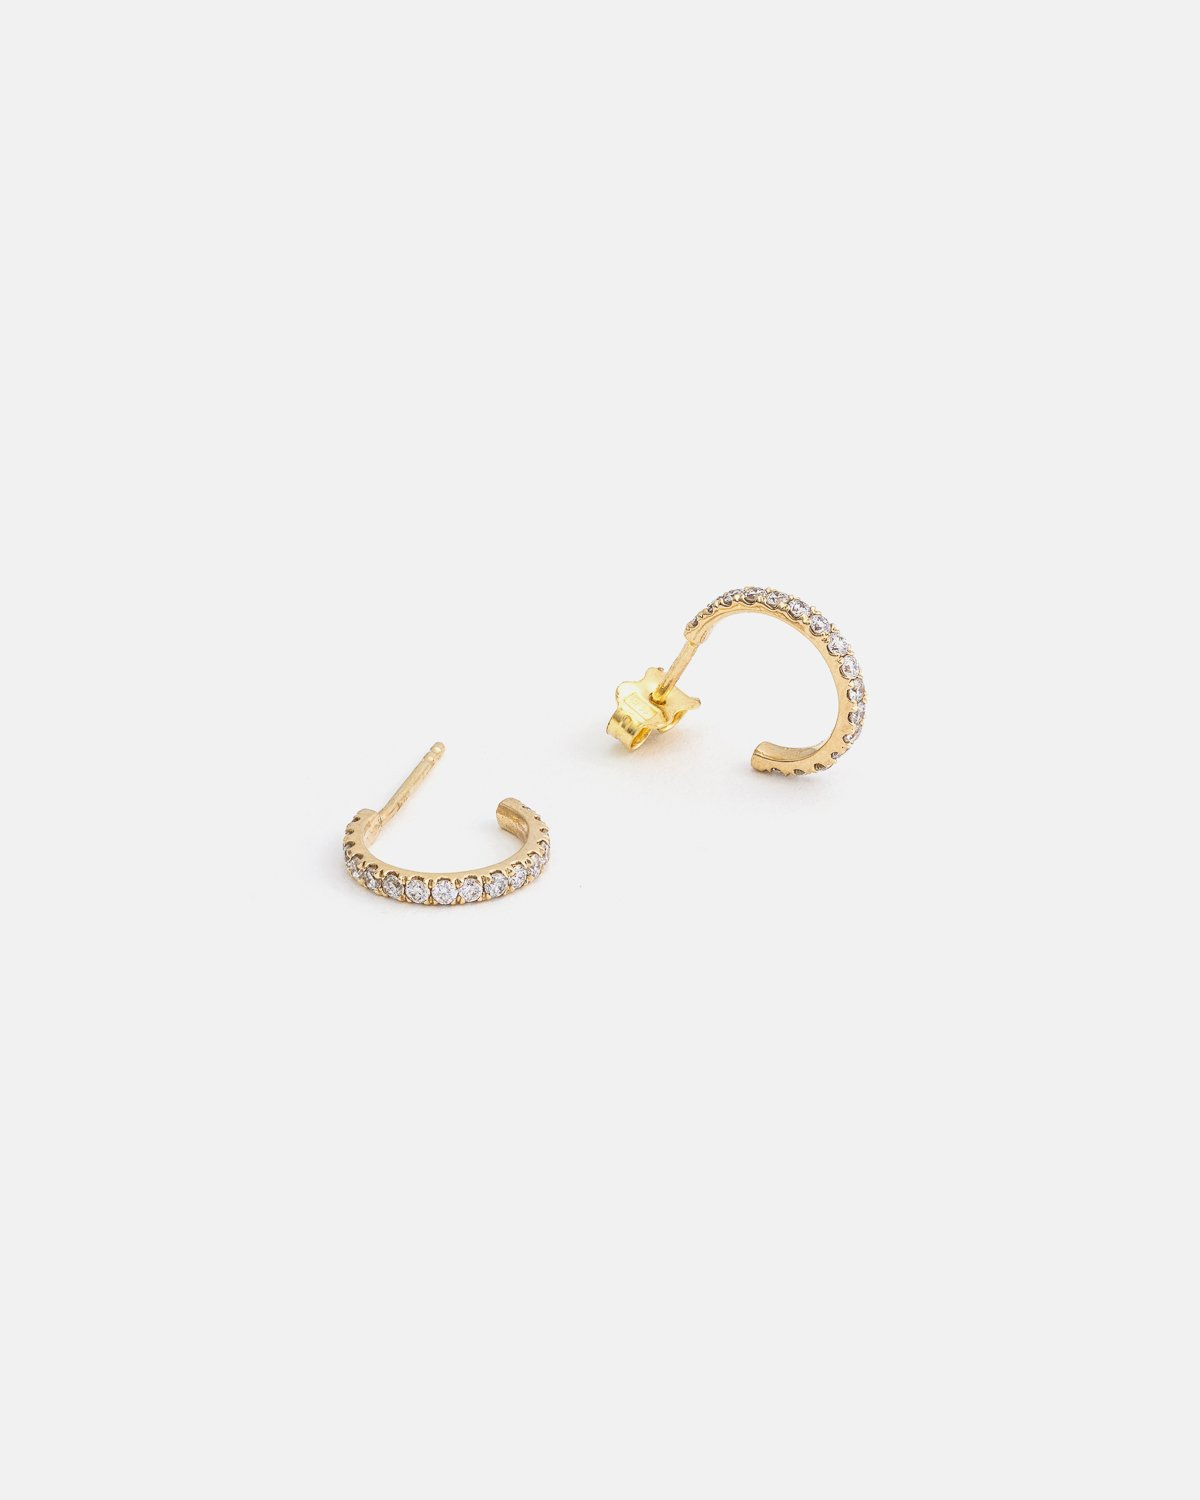 Small Pavé Hoops in Yellow Gold with Diamonds